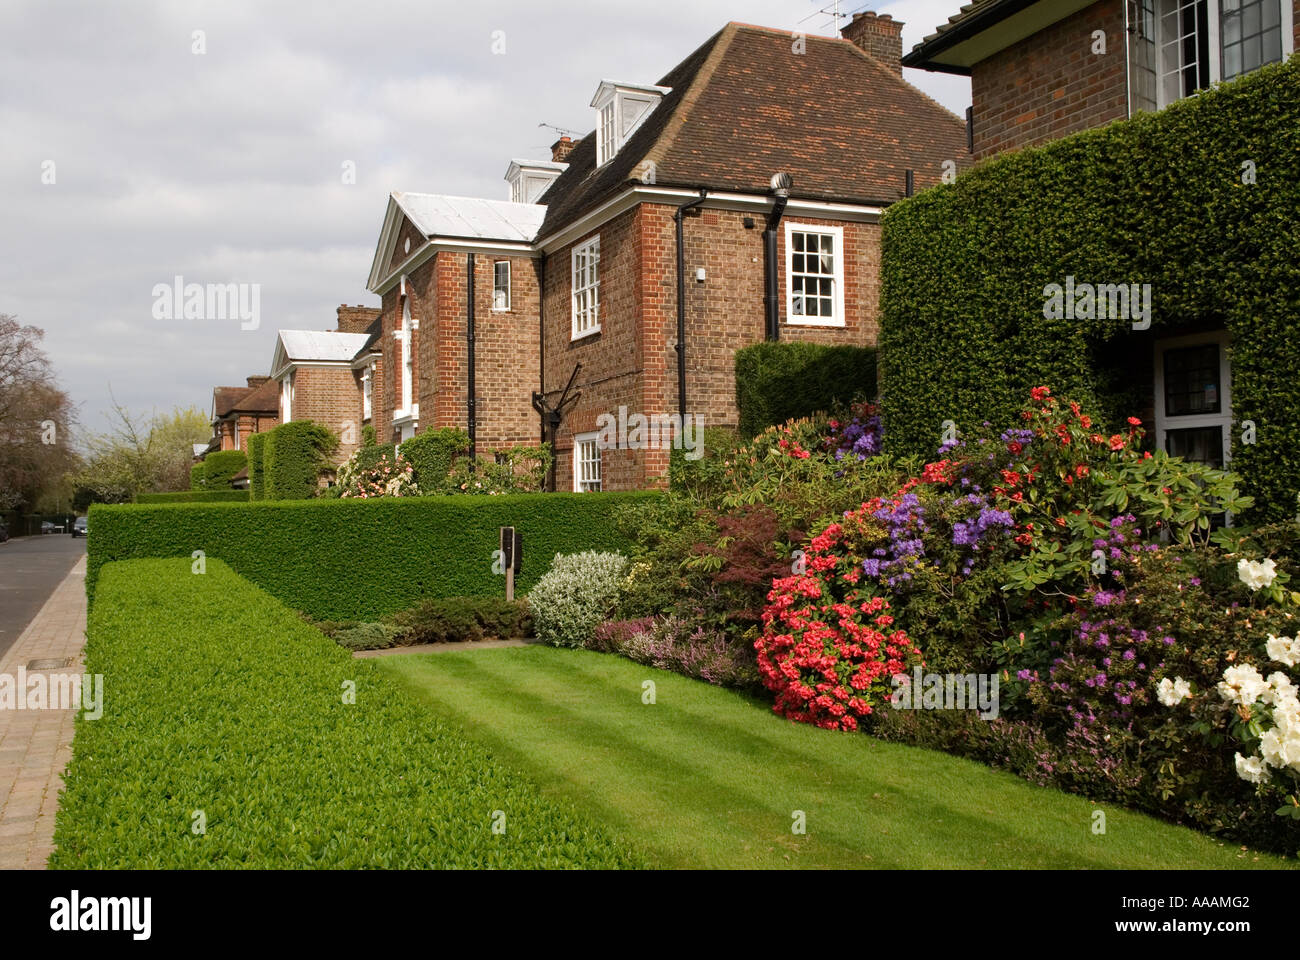 Hampstead Garden Suburb Suburban Street Stock Photos & Hampstead ...